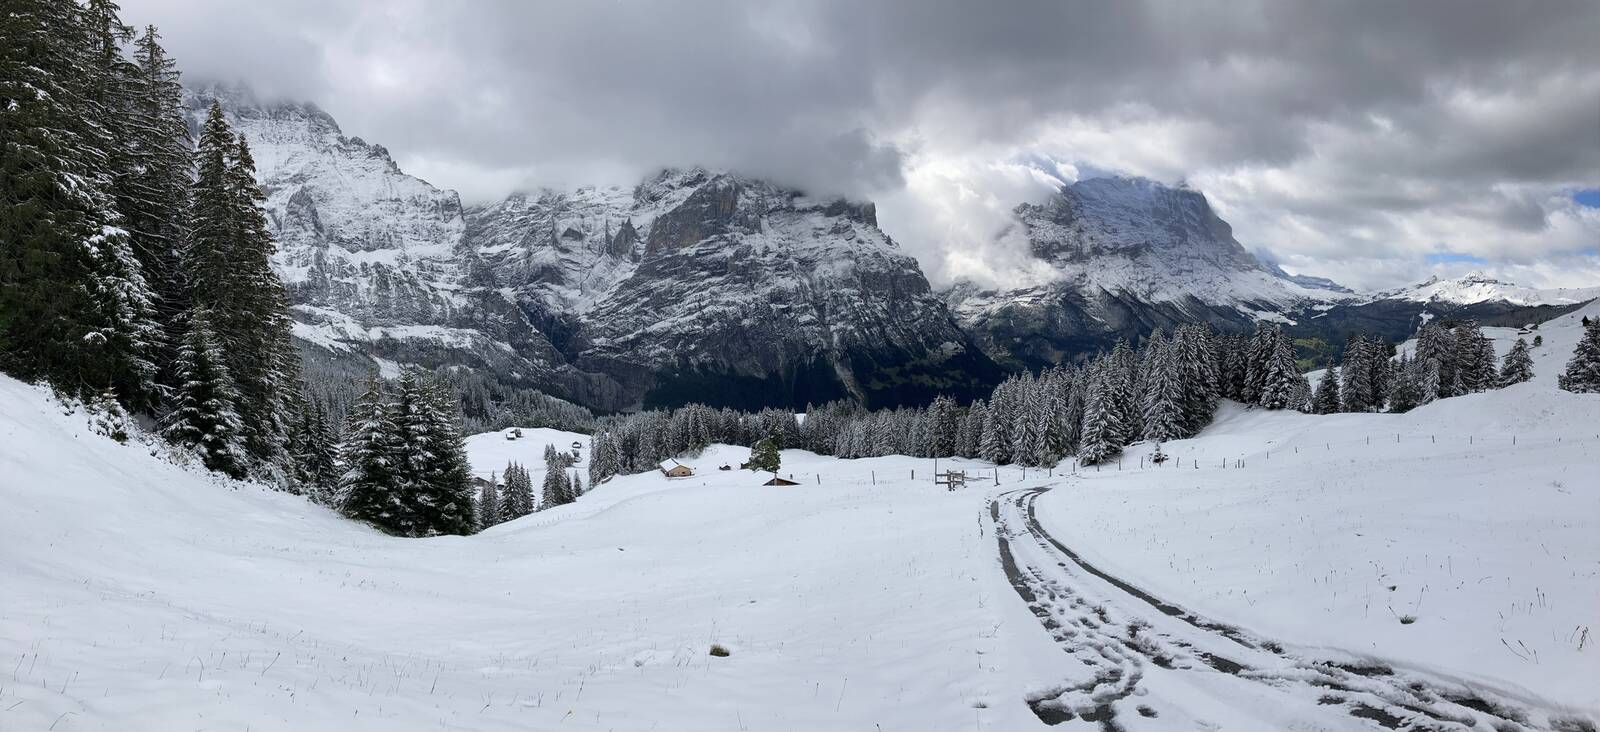 The Grindelwald Valley, Bern